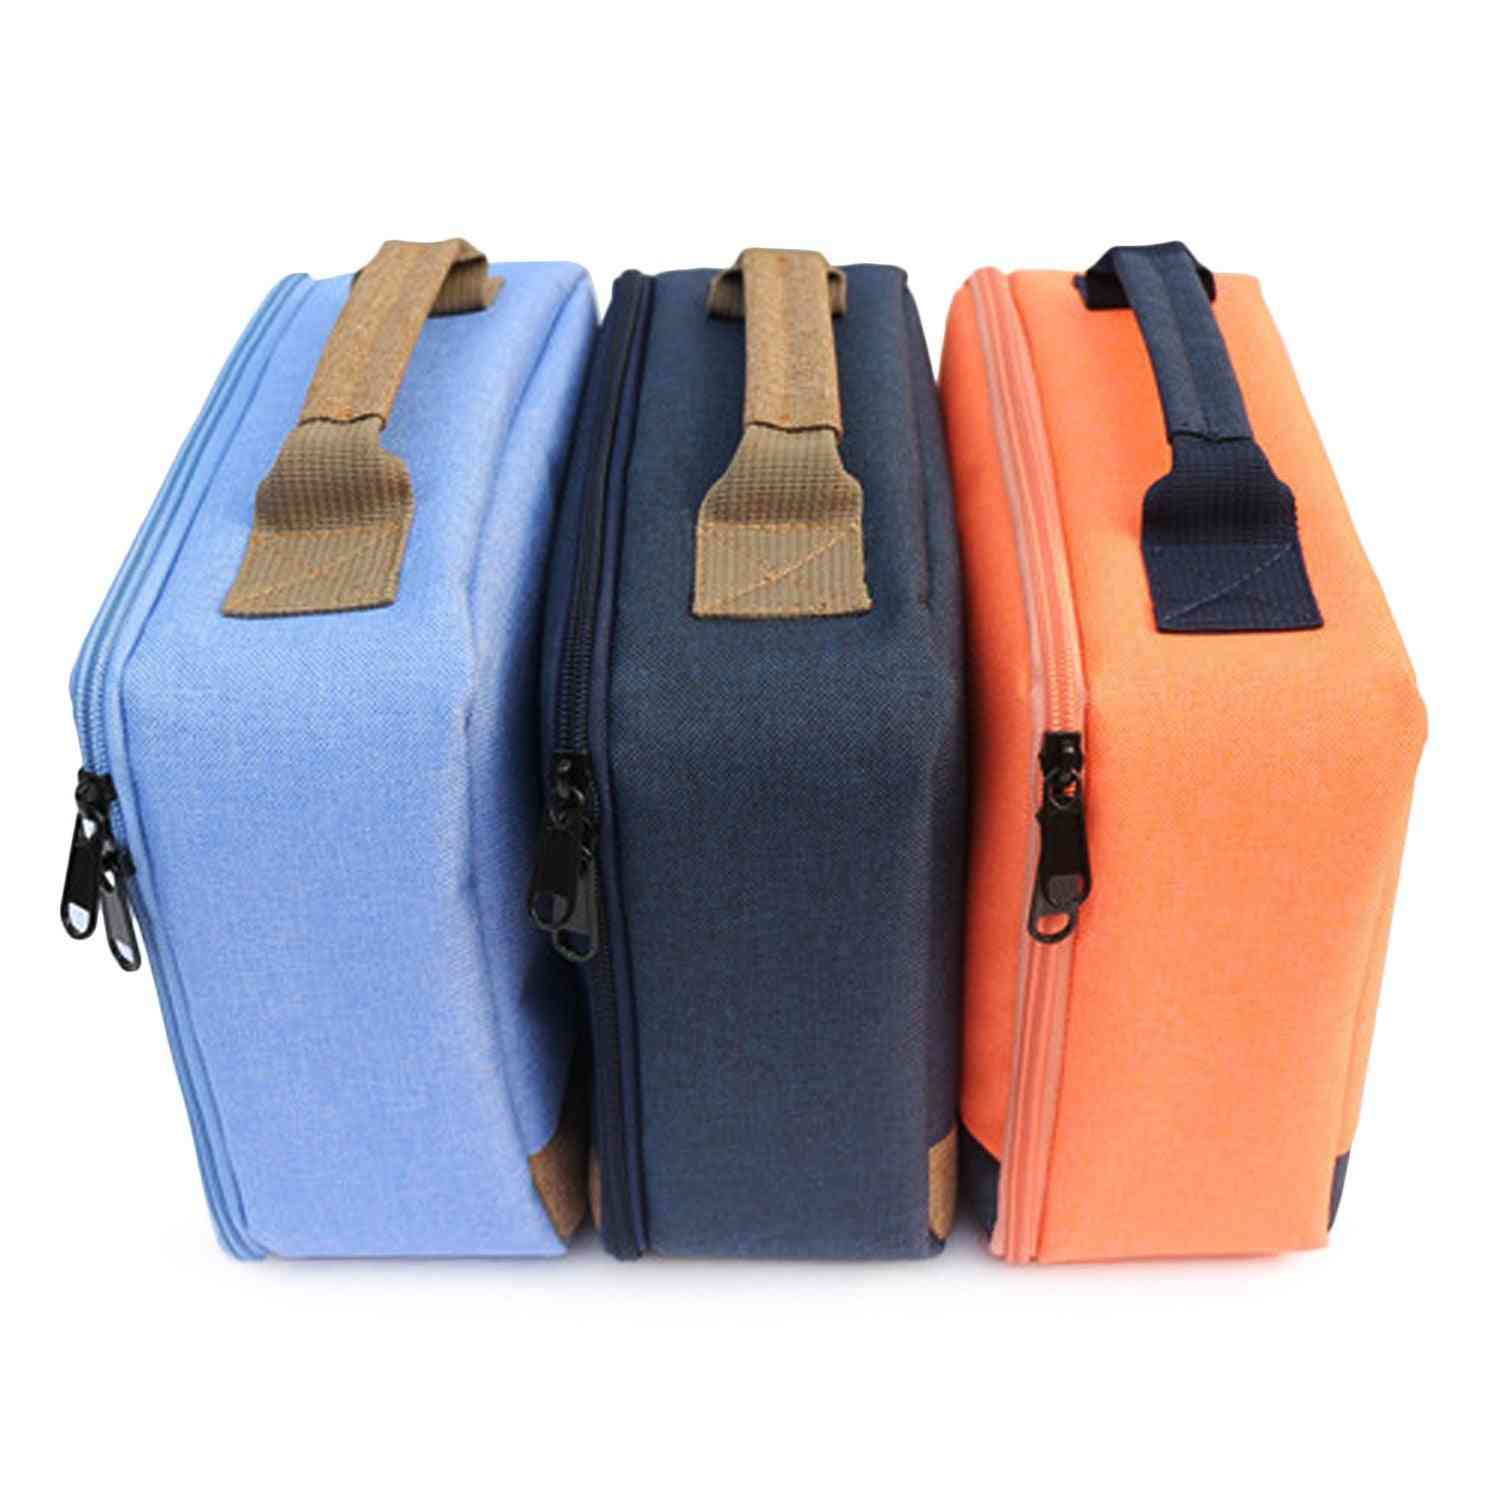 Portable Scratchproof, Shockproof Canvas Storage, Carry Bag, Handbag Case For Selphy Cp910 1200 Mini Printer Projectors